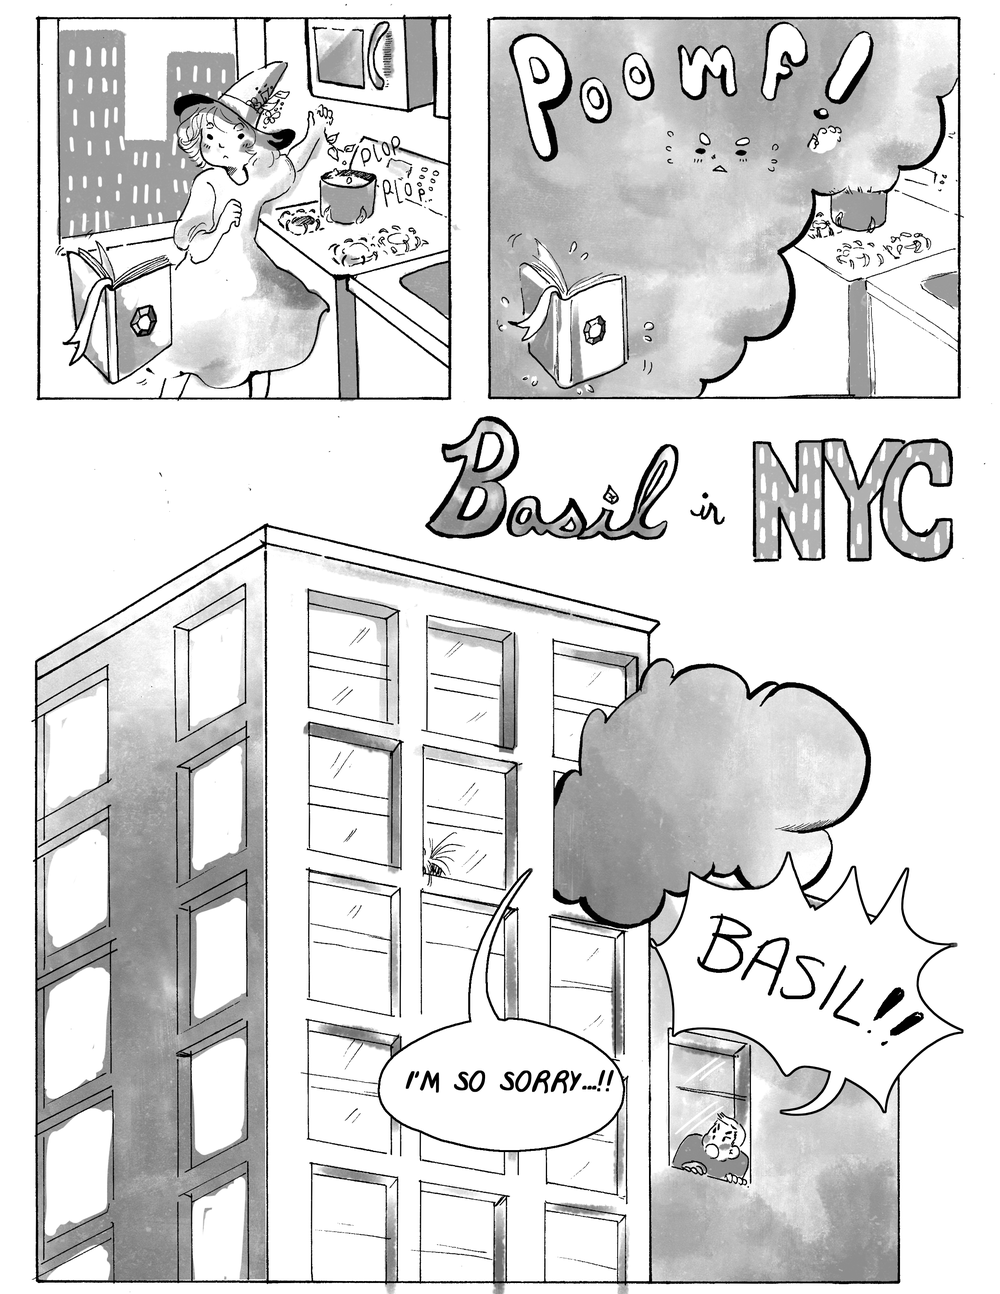 Basil in NYC  Traditional & Digital - 2014  The story of a young witch who recently moved to New York  City